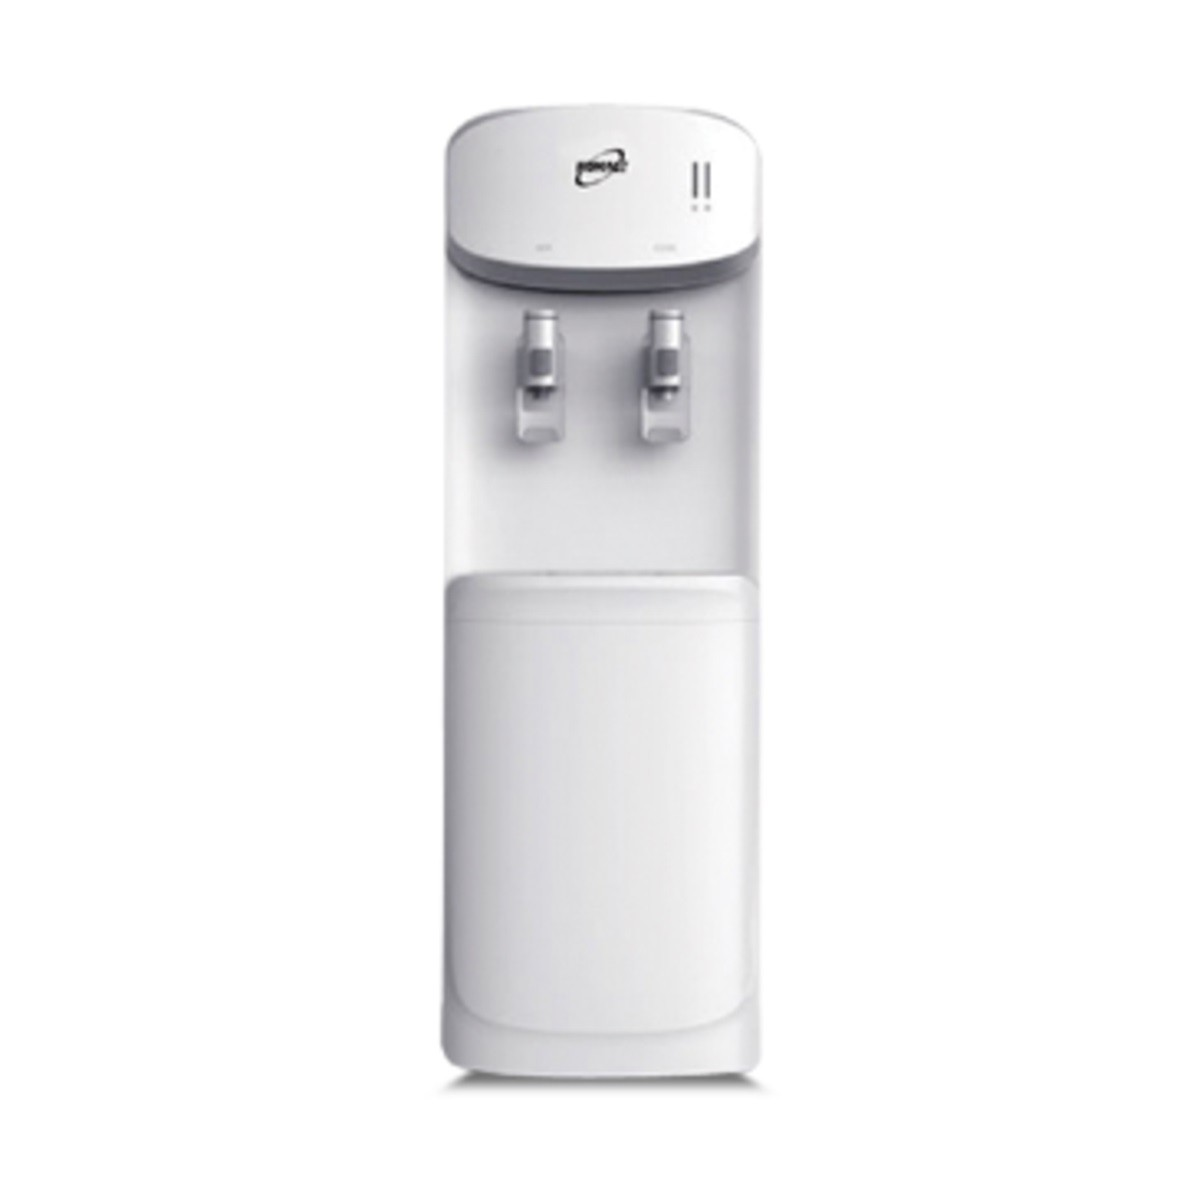 Homage HWD-25 Two Tap Water Dispenser